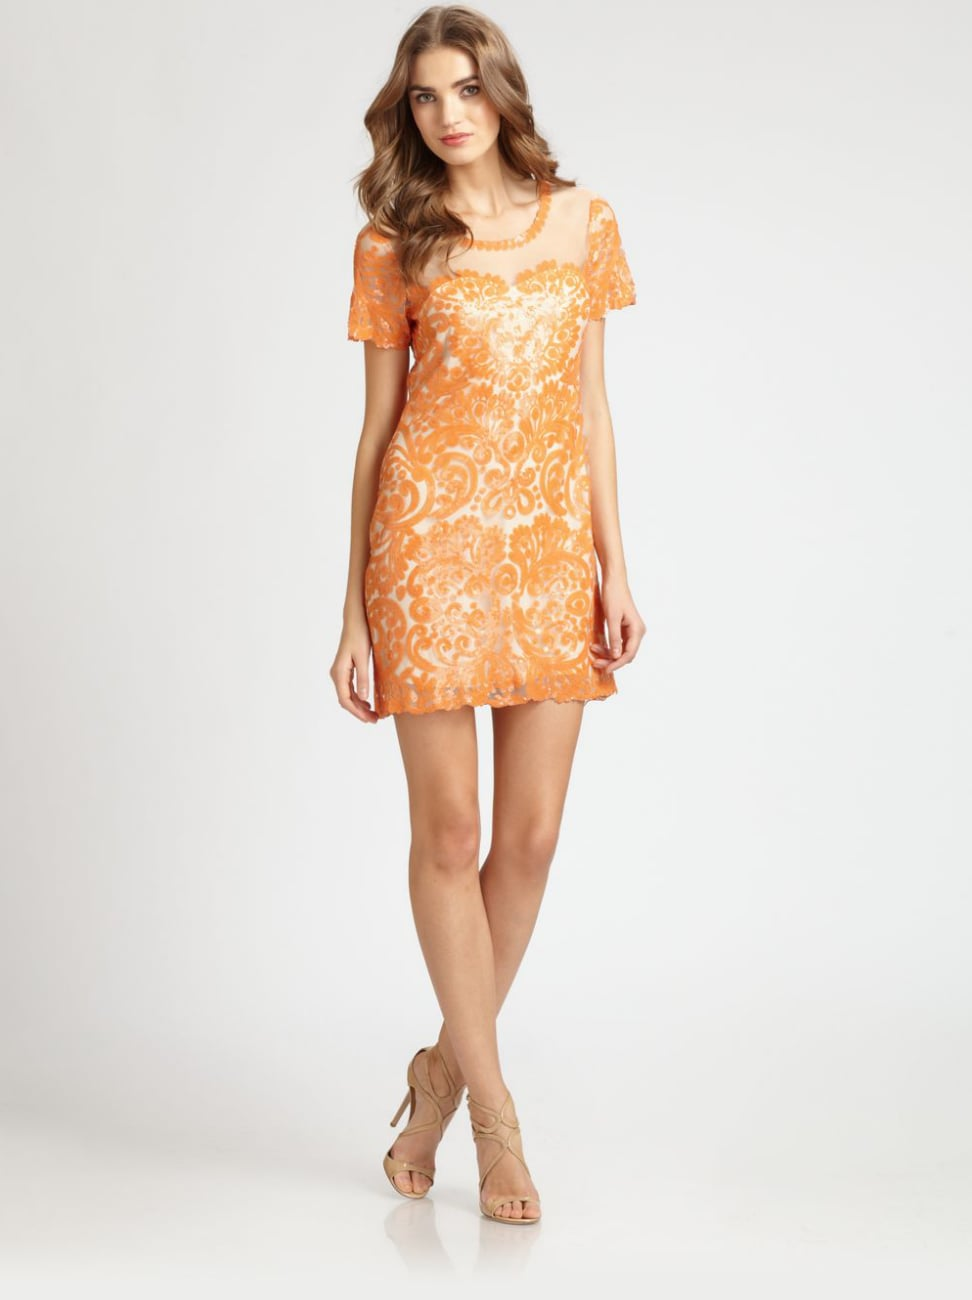 Cocktail Dresses Neednt Be In Exclusively Dark Shades